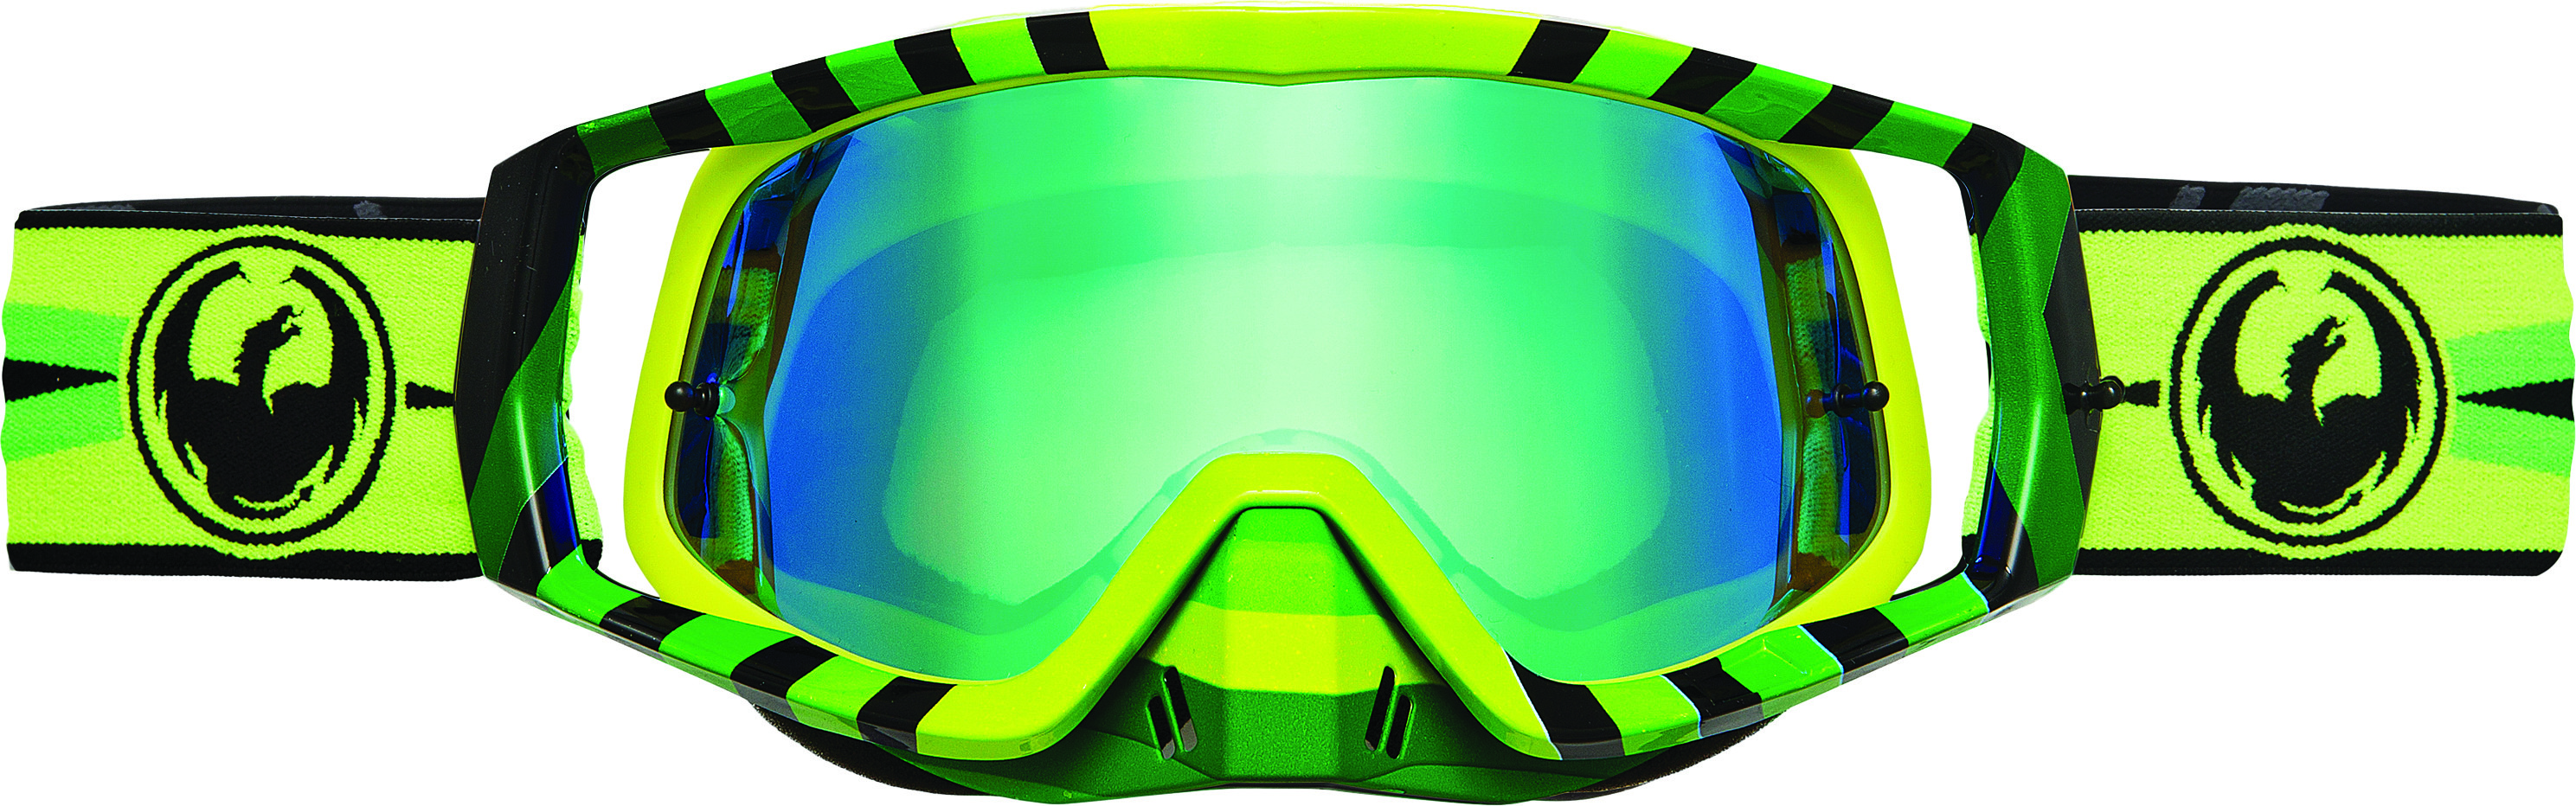 Vendetta Goggles Mirage Green Ion W/10 Pk Tearoff